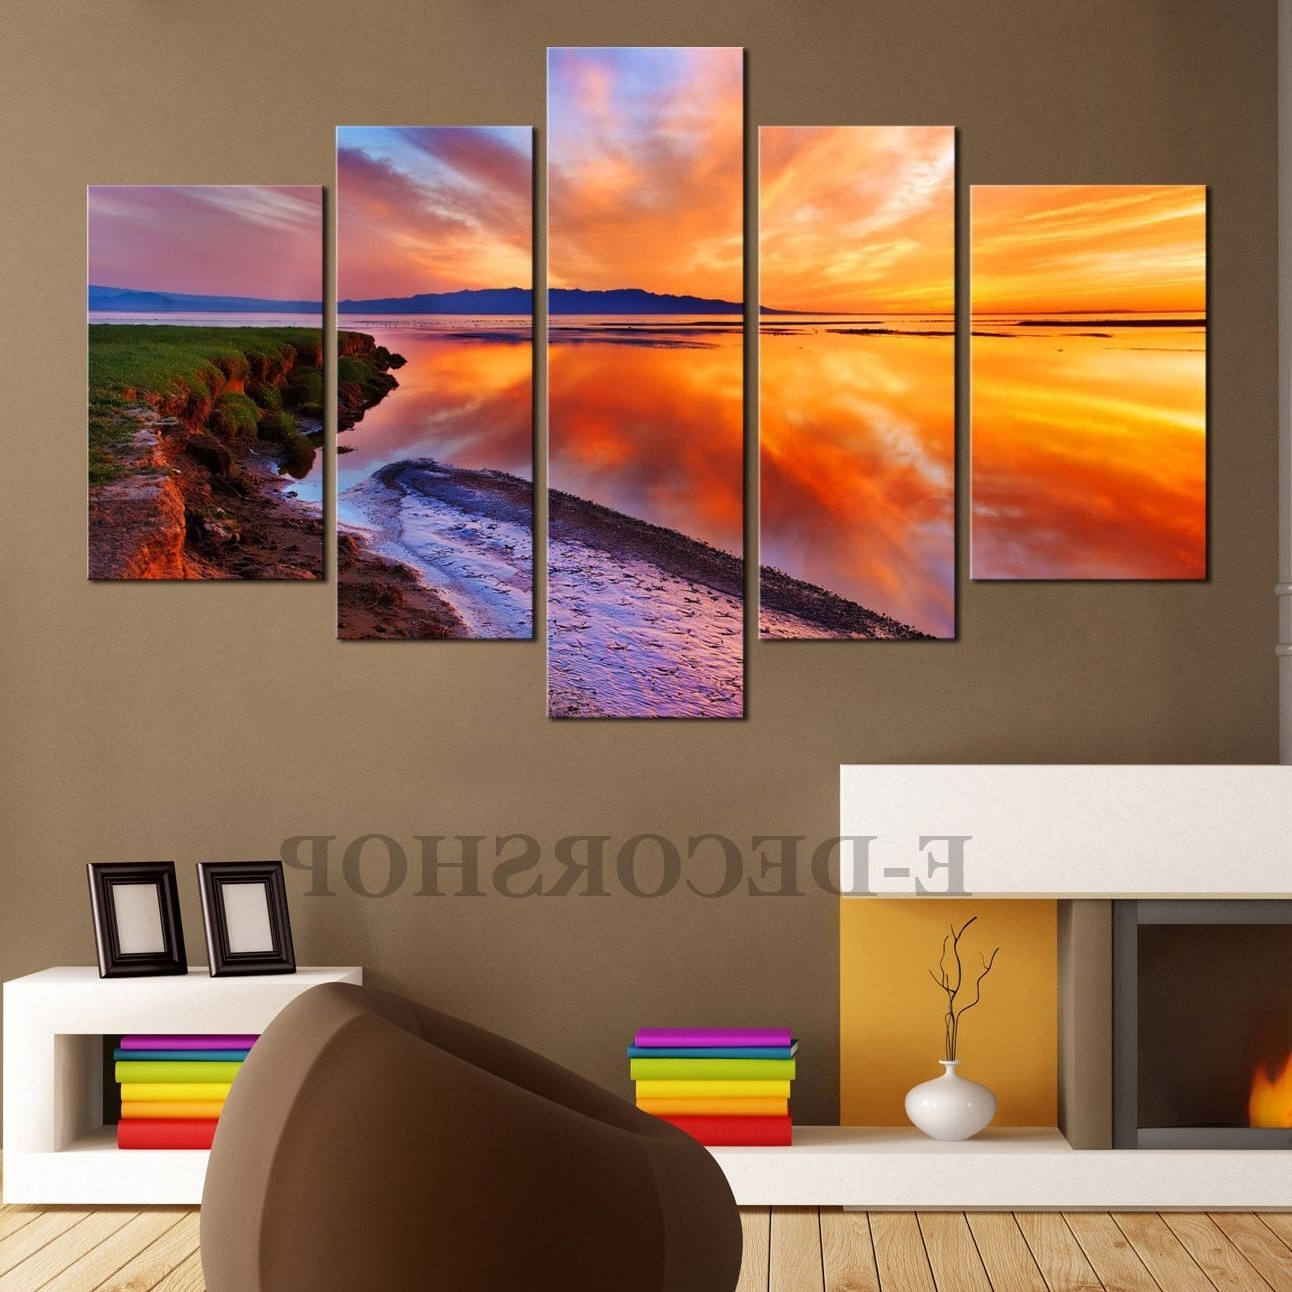 Large Canvas Wall Art – Sunset 5 Piece Canvas Art Print For Home For Newest Large Canvas Wall Art (View 4 of 15)